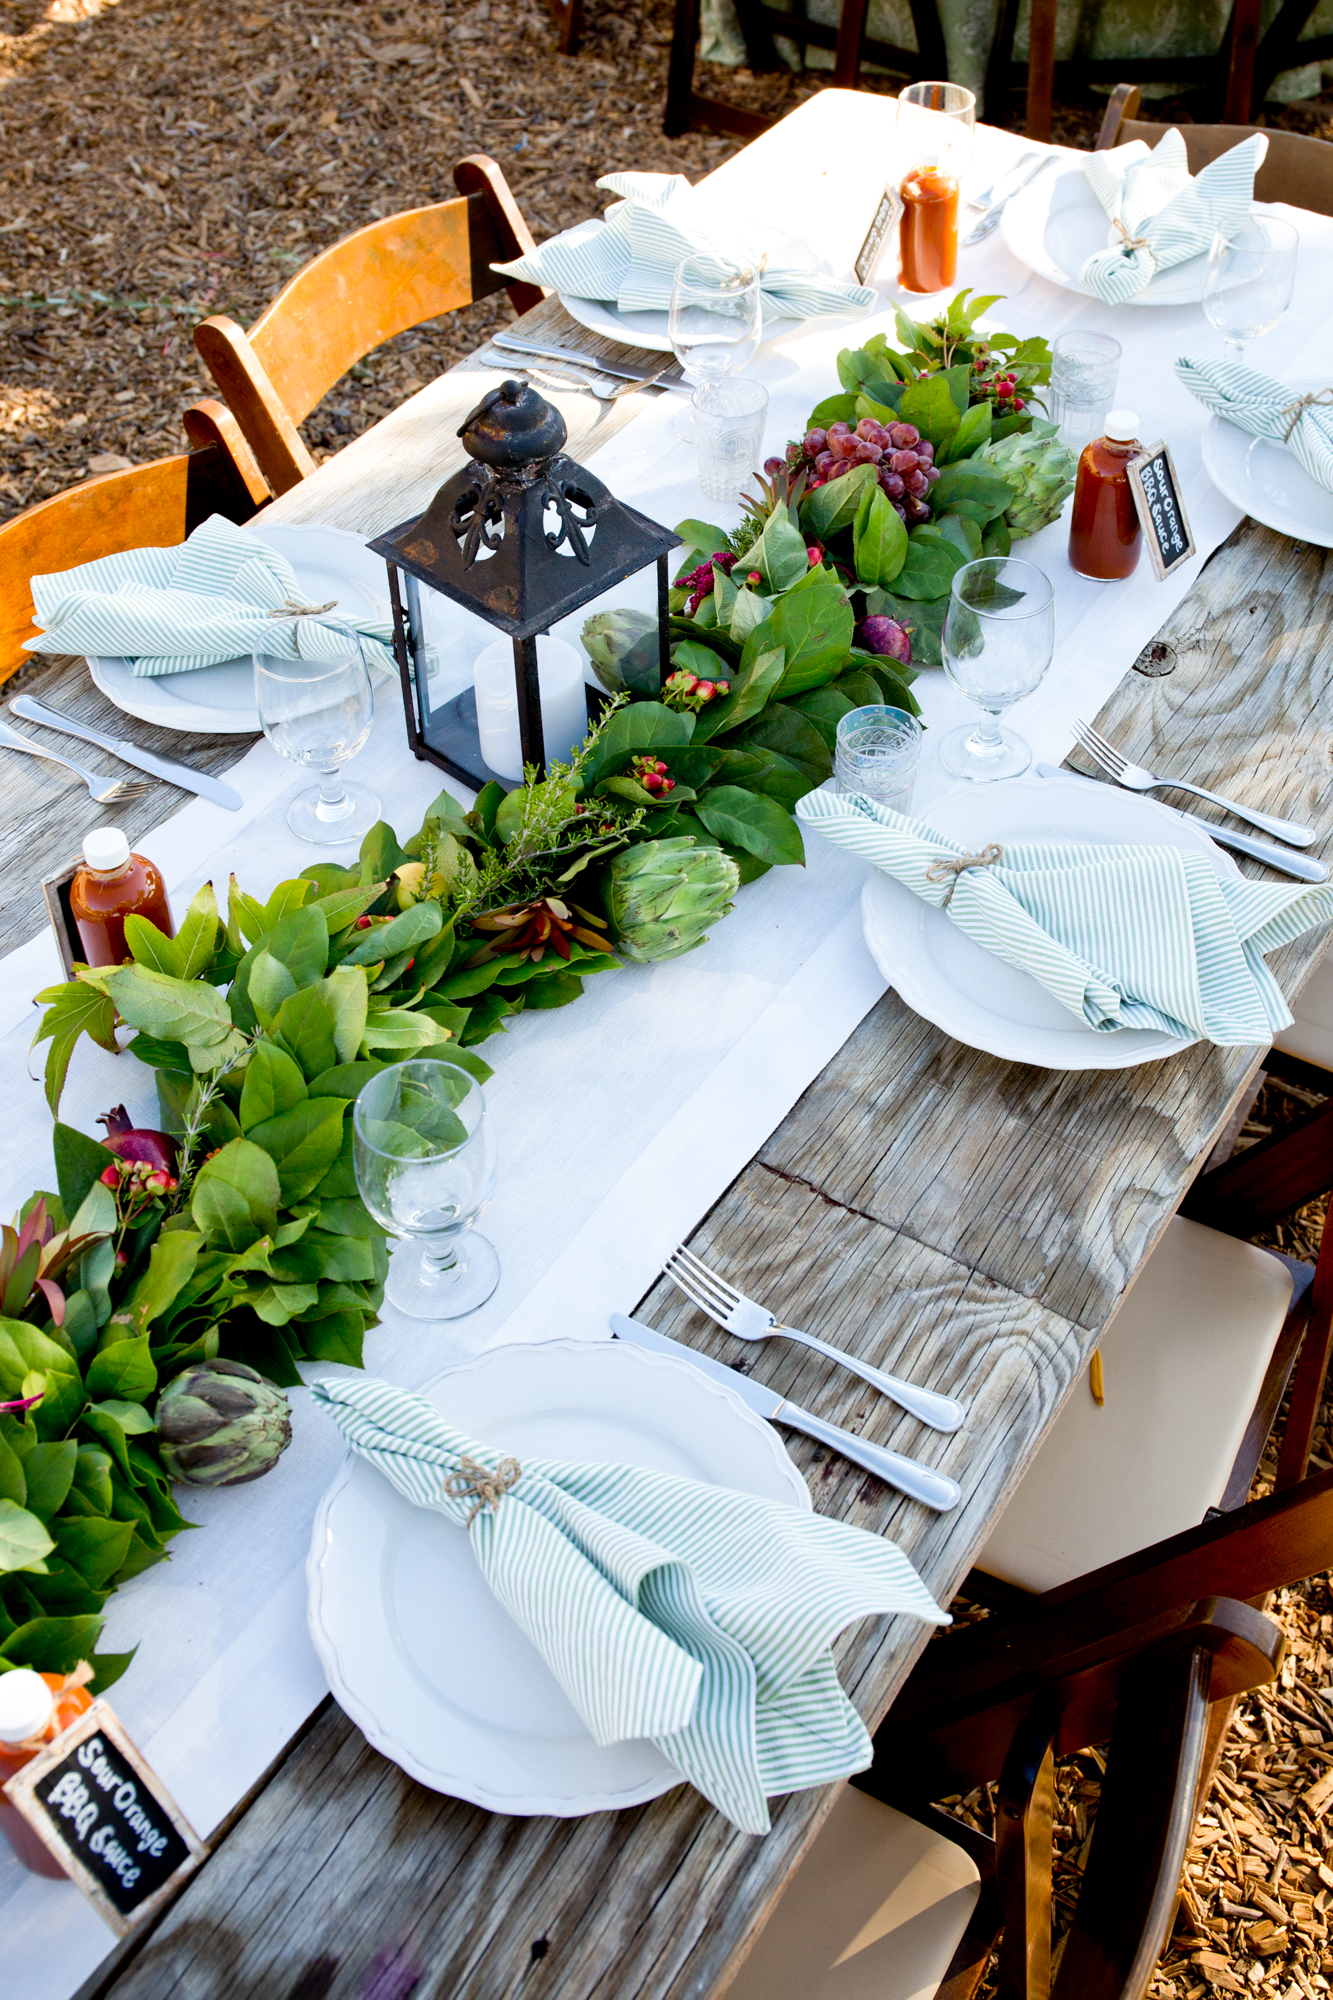 027_CarlyGaebe_SteadfastStudio_WeddingPhotography_Malibu_LosAngeles_LA_California_Winery_Hilltop_CieloFarms_TableDecor_Greenery_Vineyard.jpg